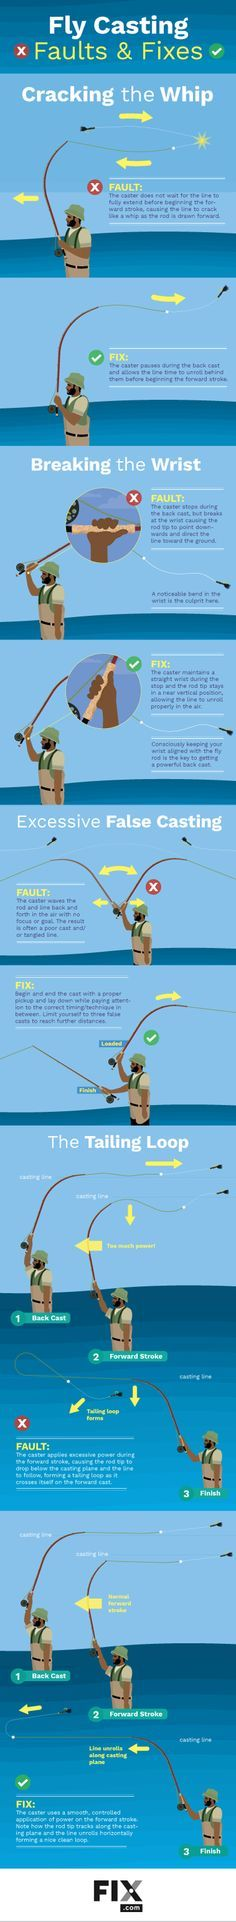 Improve Your Casting With These Fly Fishing Tips | Fix.com                                                                                                                                                                                 More